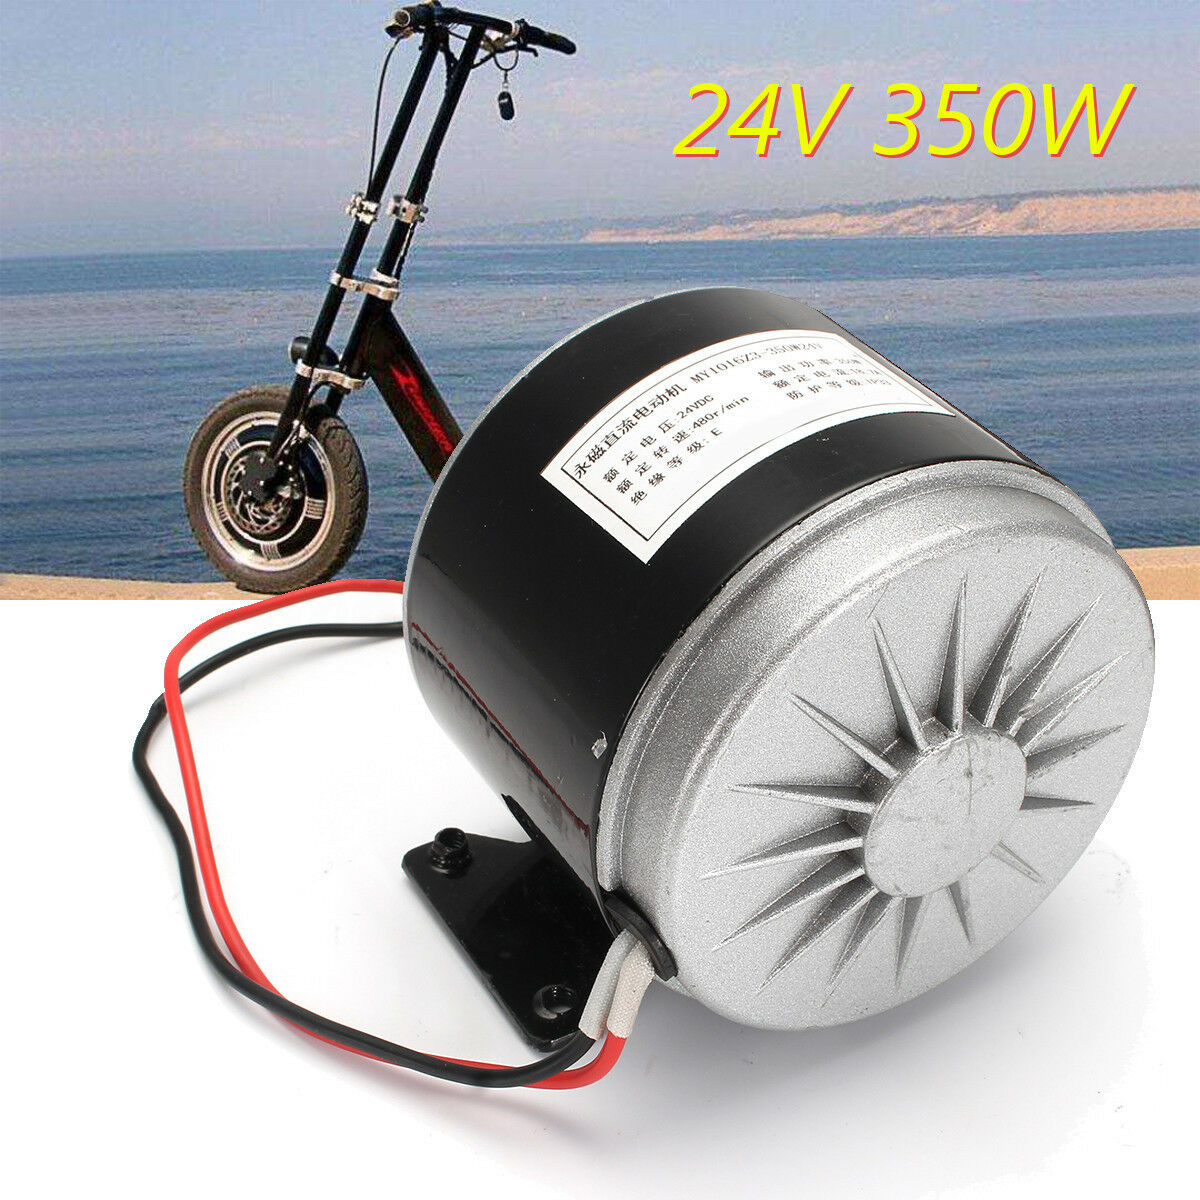 350W 24V 2750 RPM ZY1016 Electric Motor E Bike Brushed Scooter Electric Motor